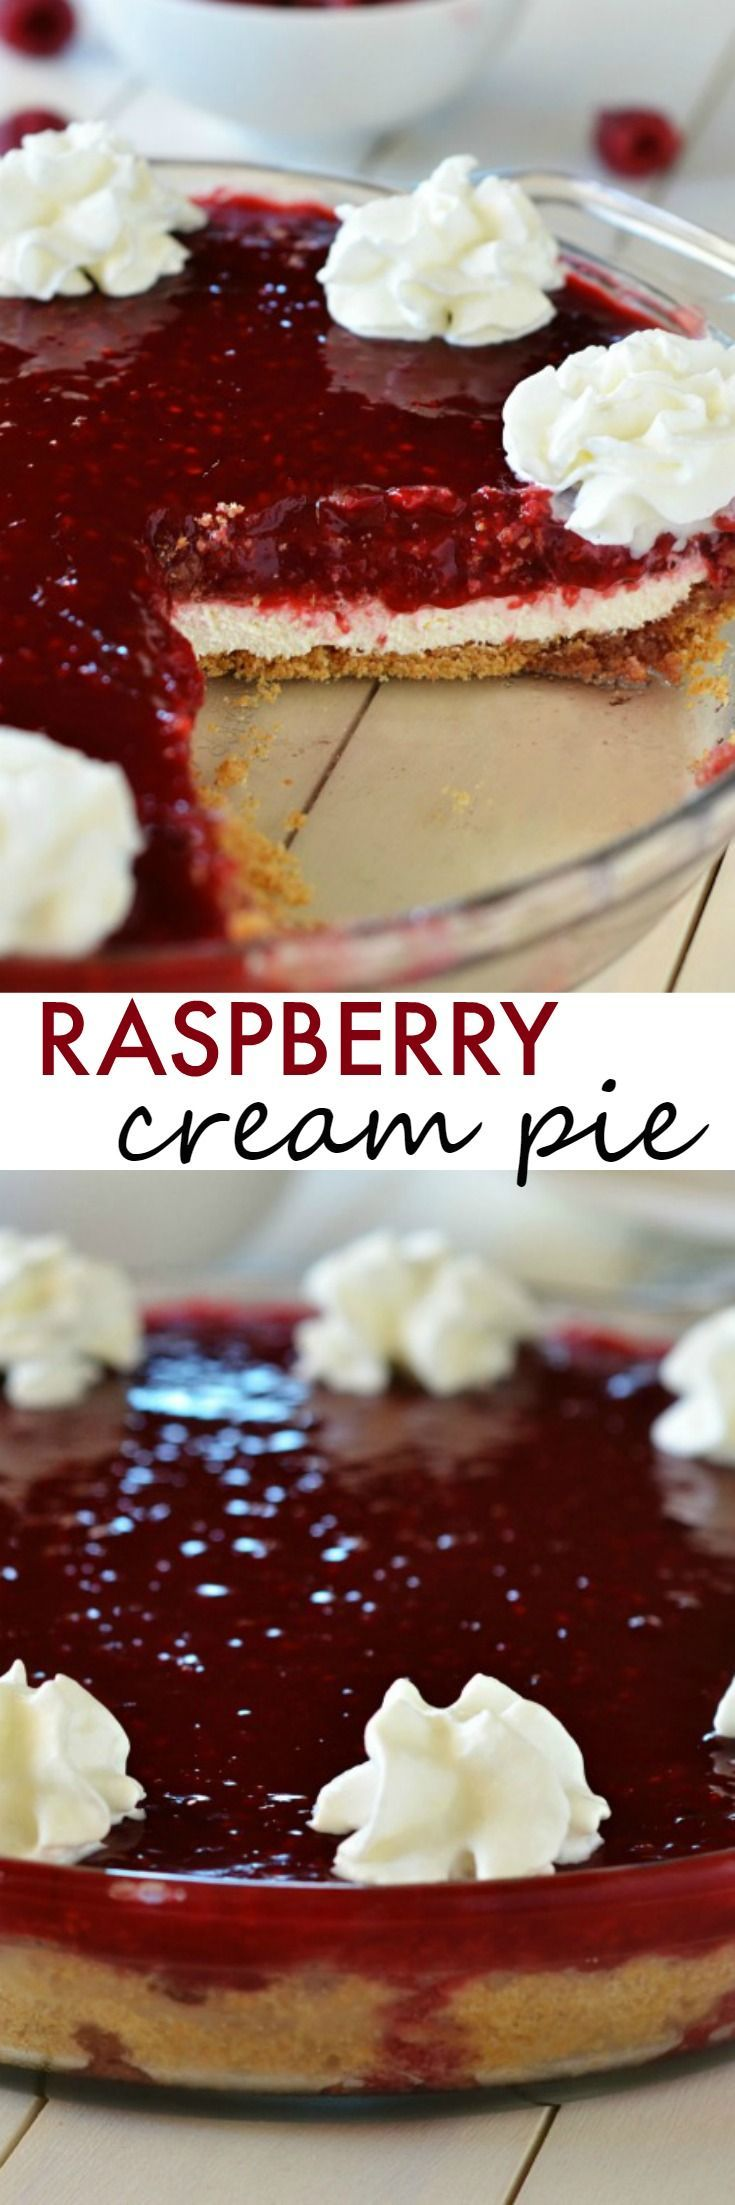 Just like GG's Raspberry dessert!! Raspberry Cream Pie